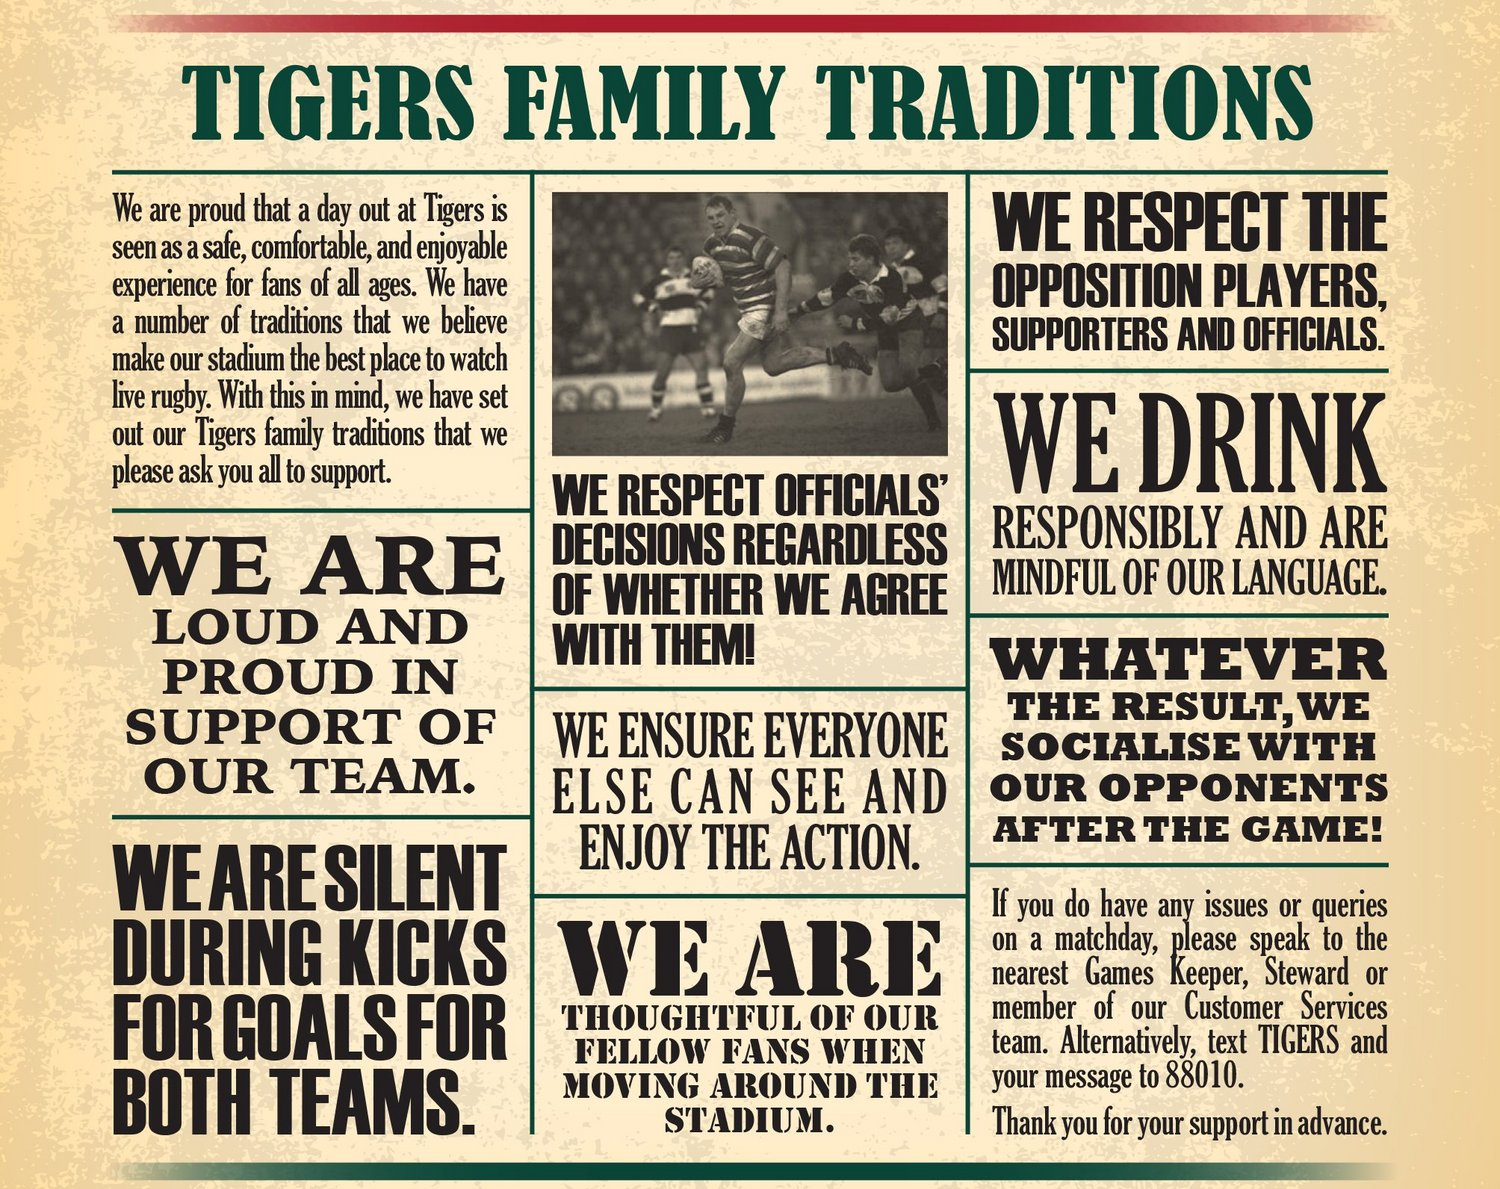 Tigers Family Traditions